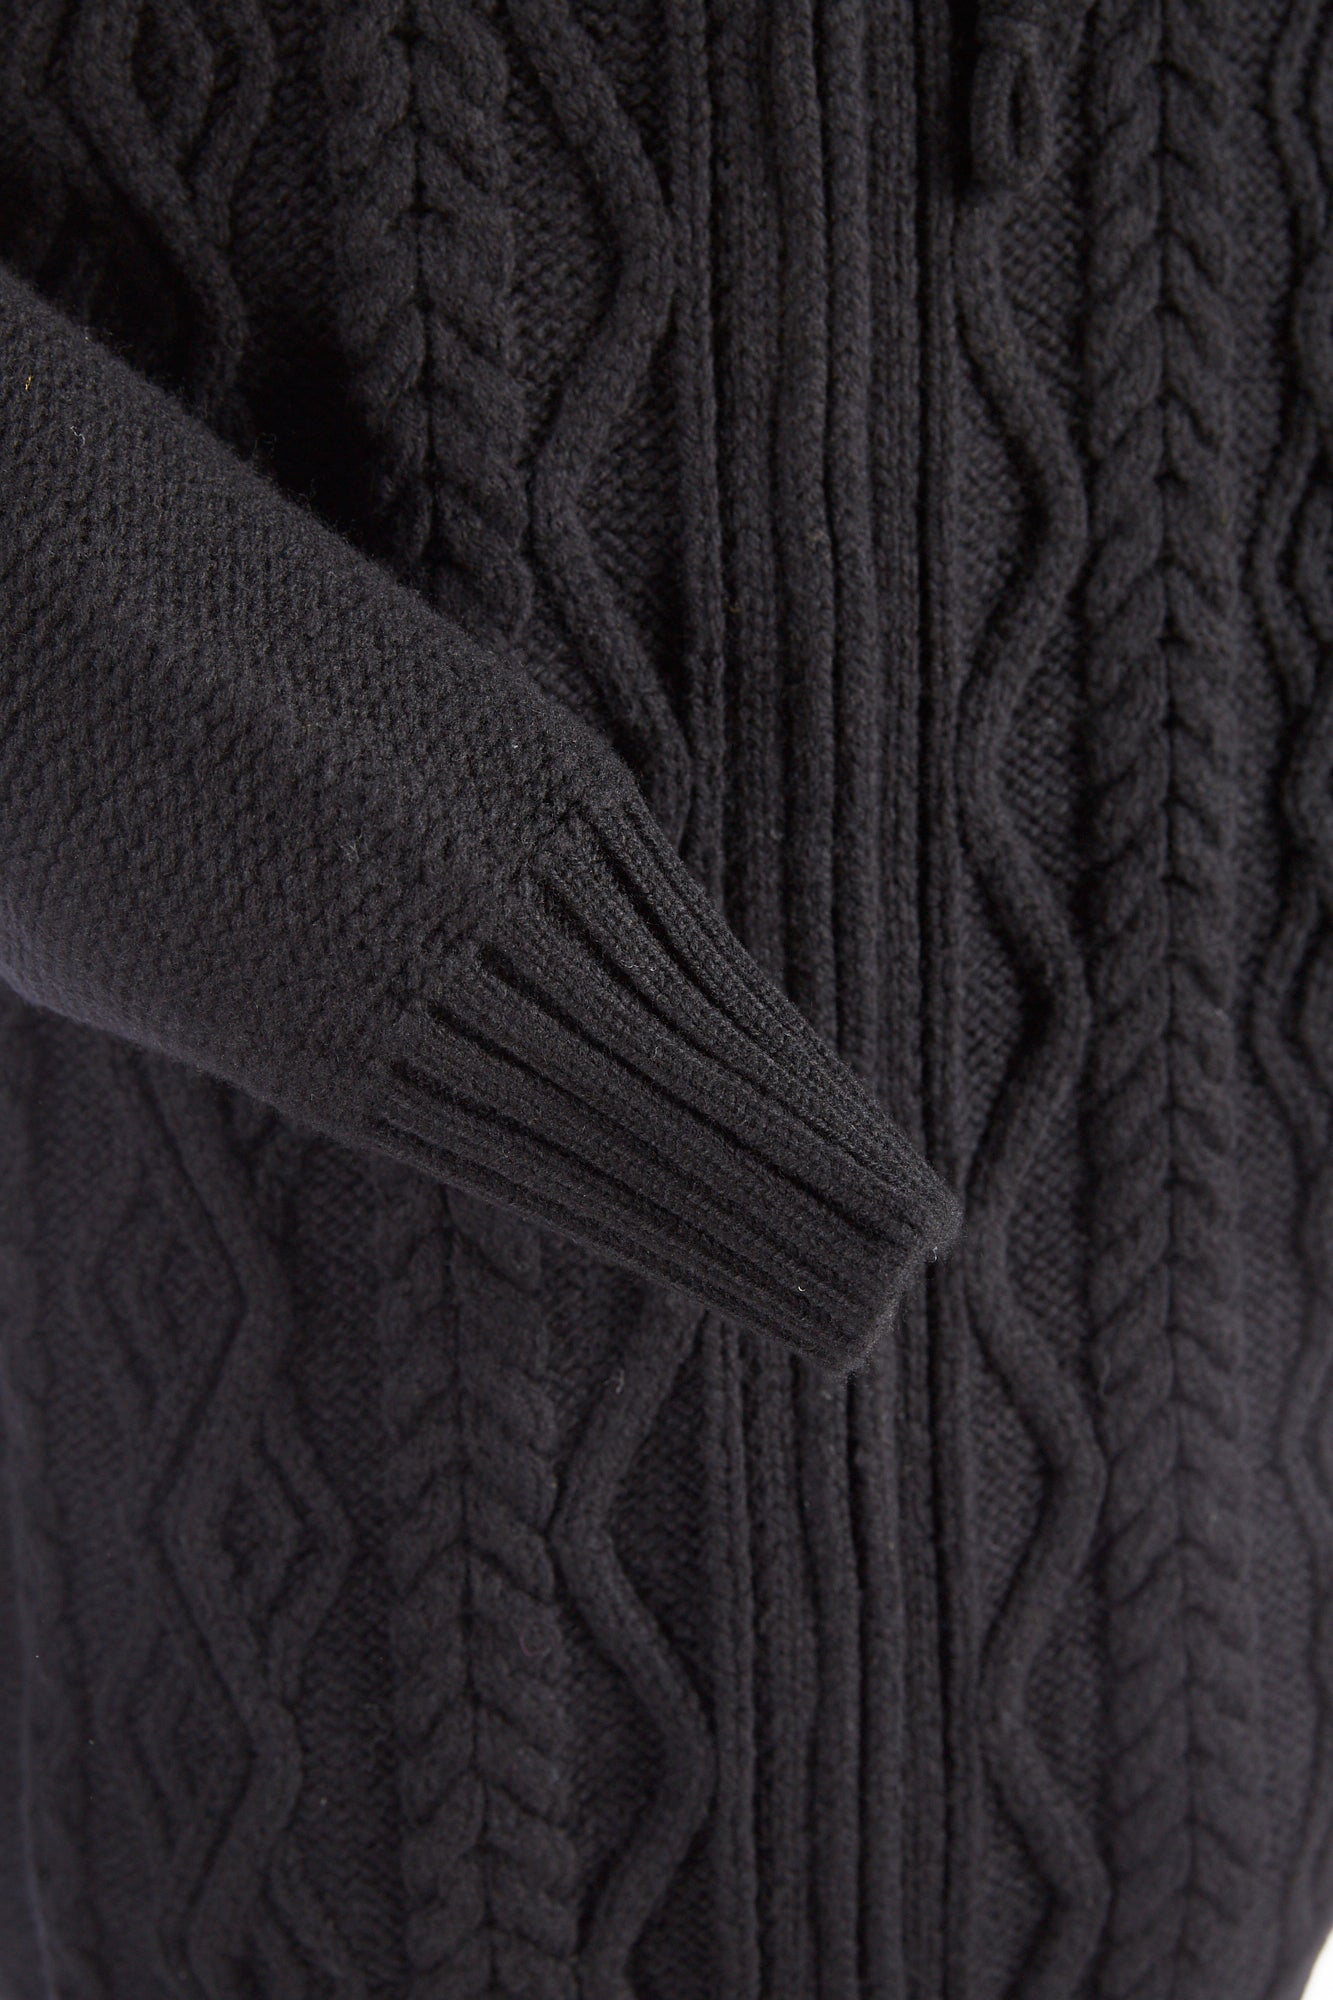 Inis Meáin Black Raven Aran Hoodie Sweater - Sweaters - Inis Meáin - LALONDE's